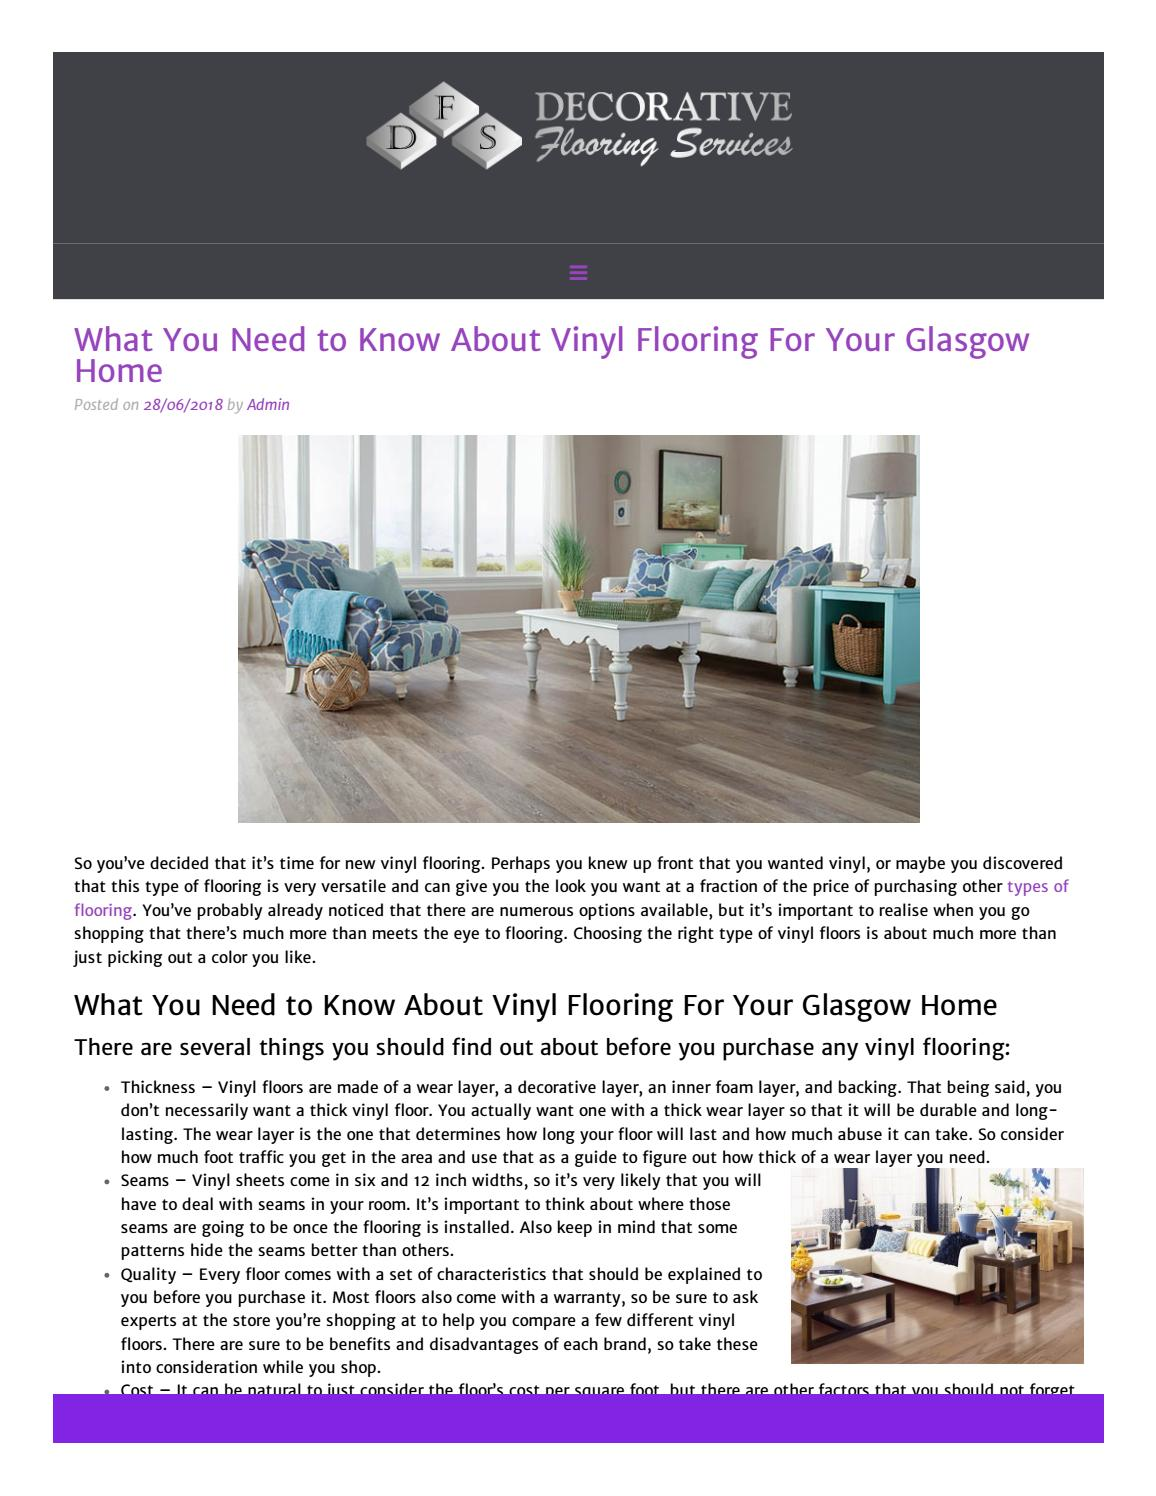 What You Need To Know About Vinyl Flooring For Your Glasgow Home